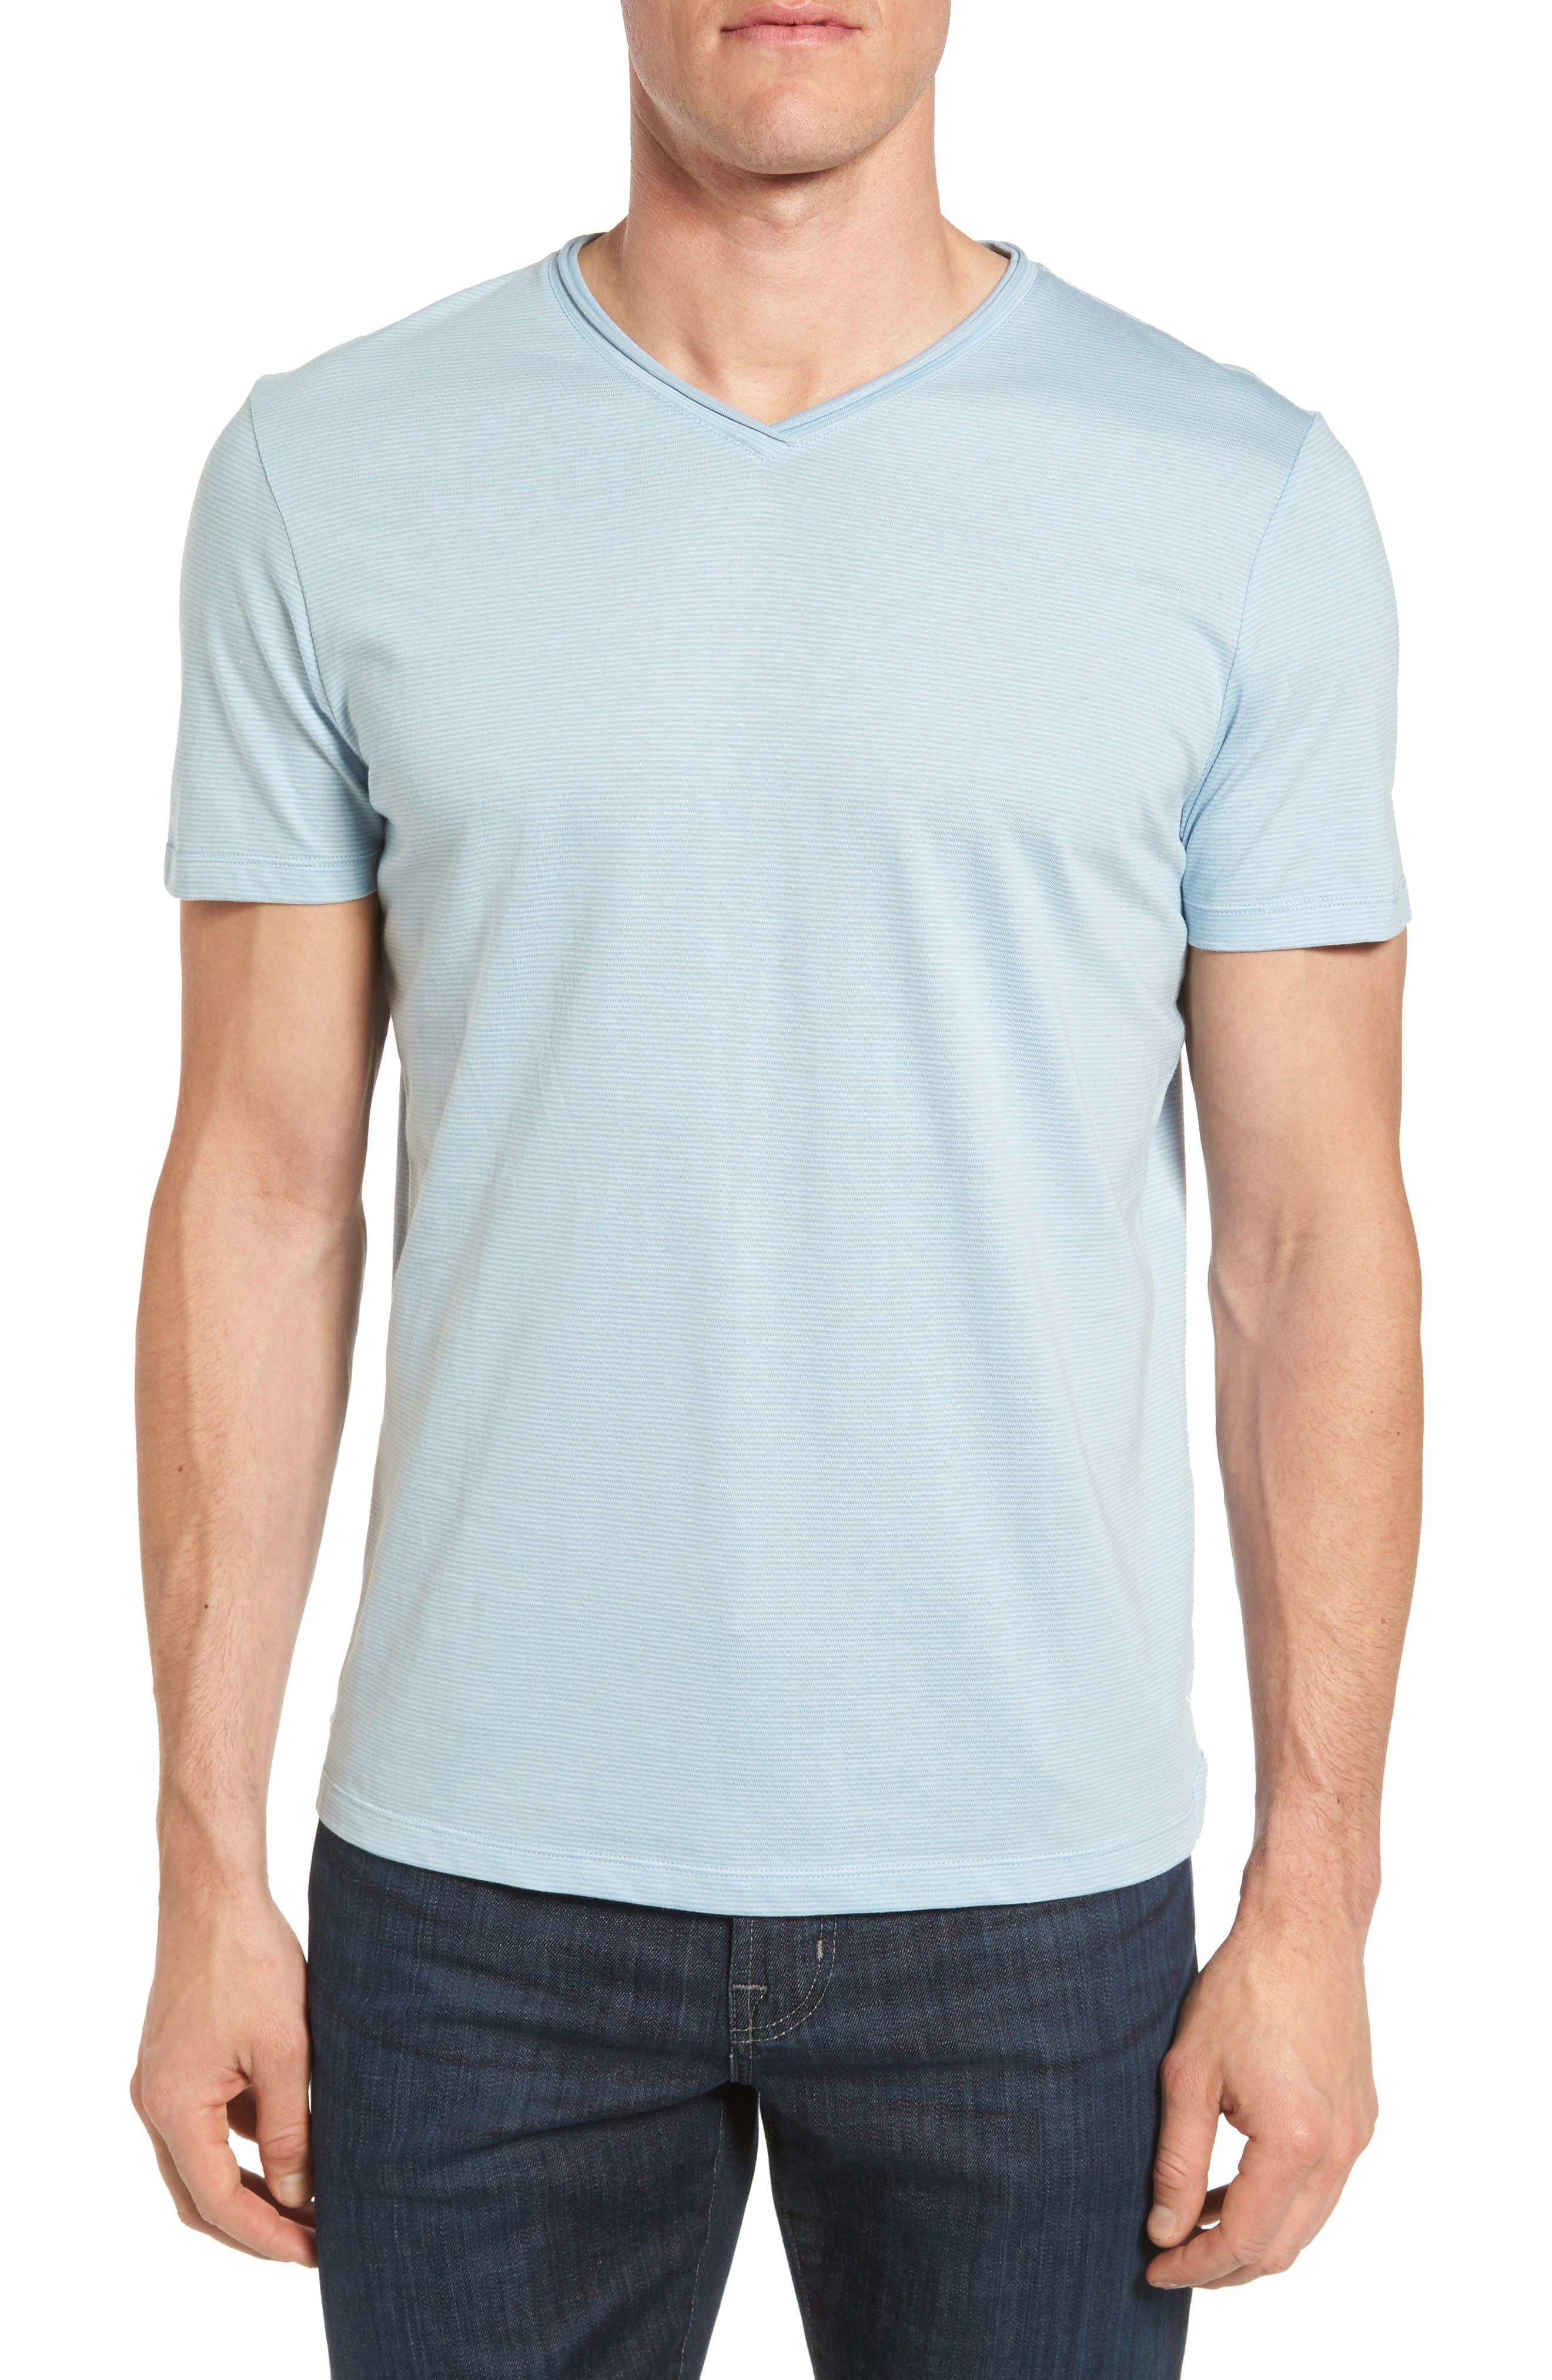 Robert Barakett Oslo V-Neck T-Shirt